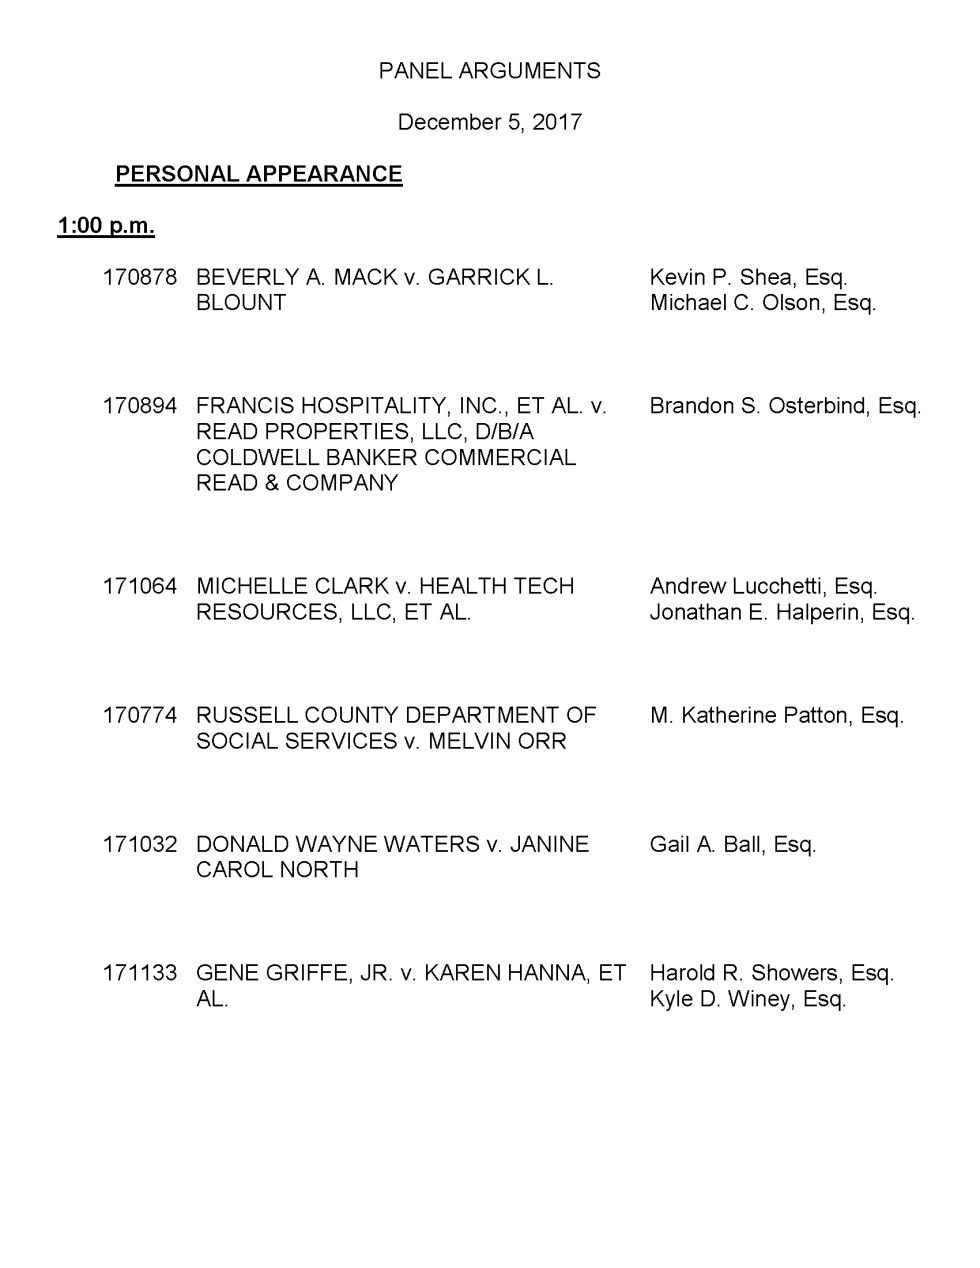 Supreme Court of Virginia - December 5, 2017 Docket-1_Page_1